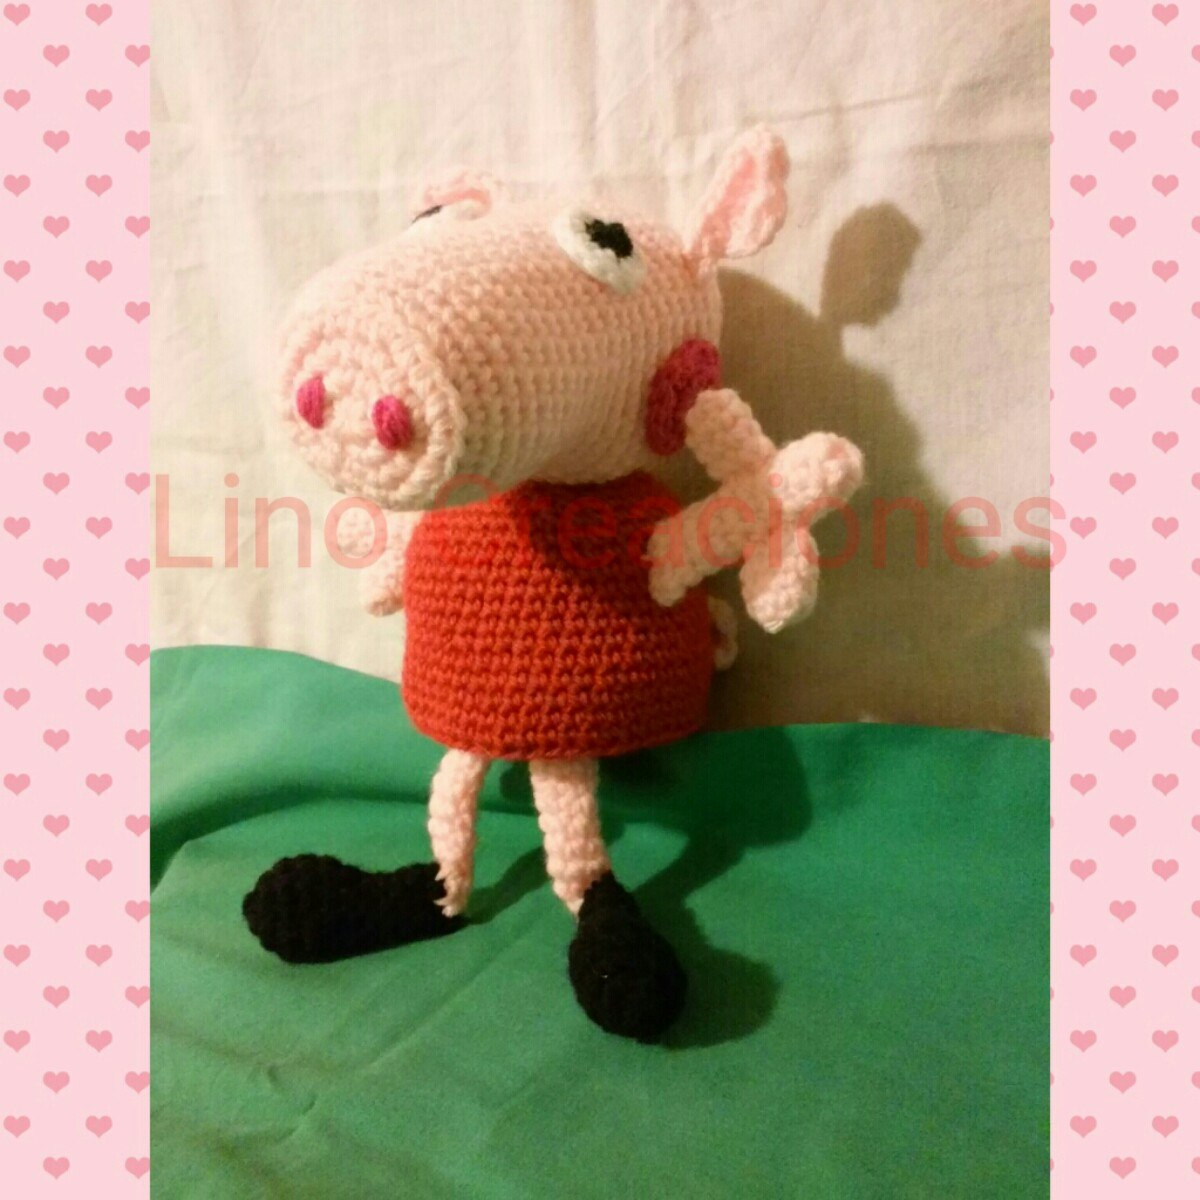 10 Handmade Peppa Pigs That Prove Craft Is Awesome in 2020 | Peppa ... | 1200x1200